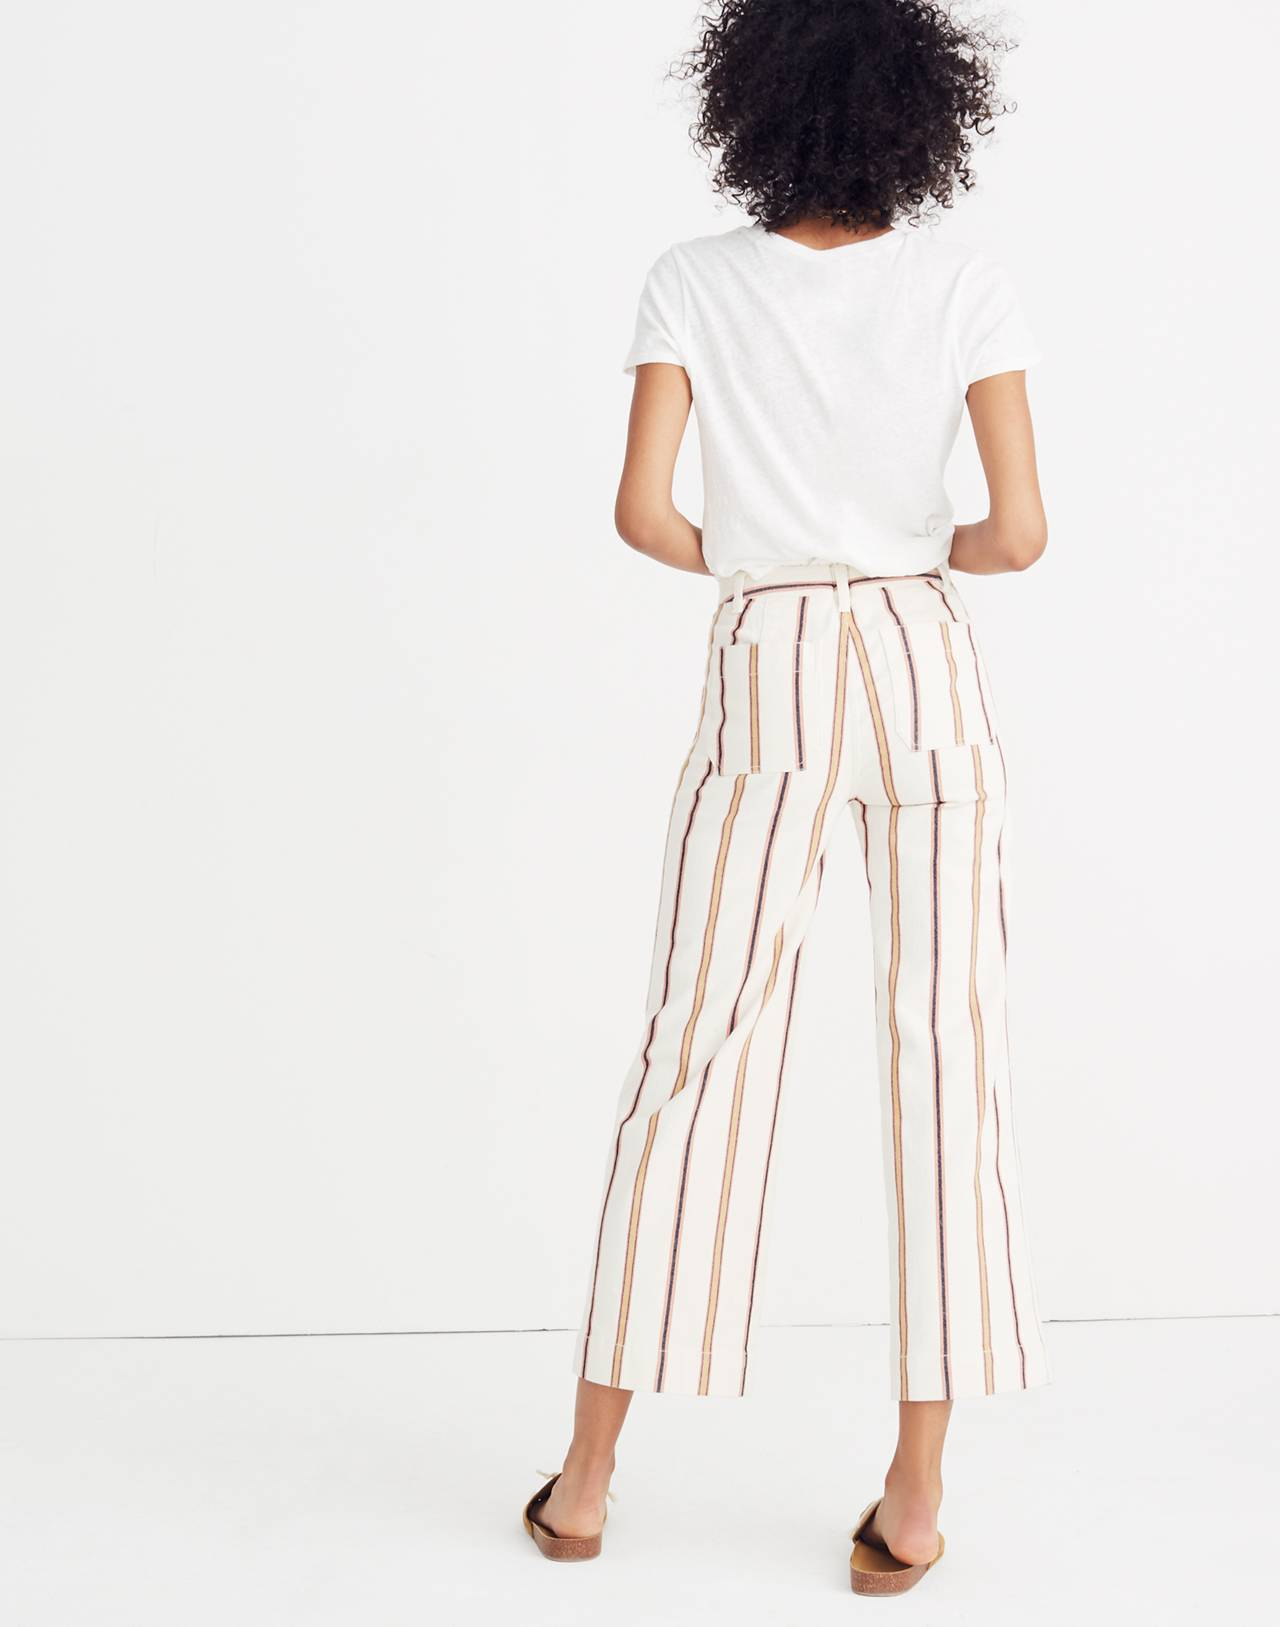 Tall Emmett Wide-Leg Crop Pants in Antique Coral Stripe in antique coral image 3